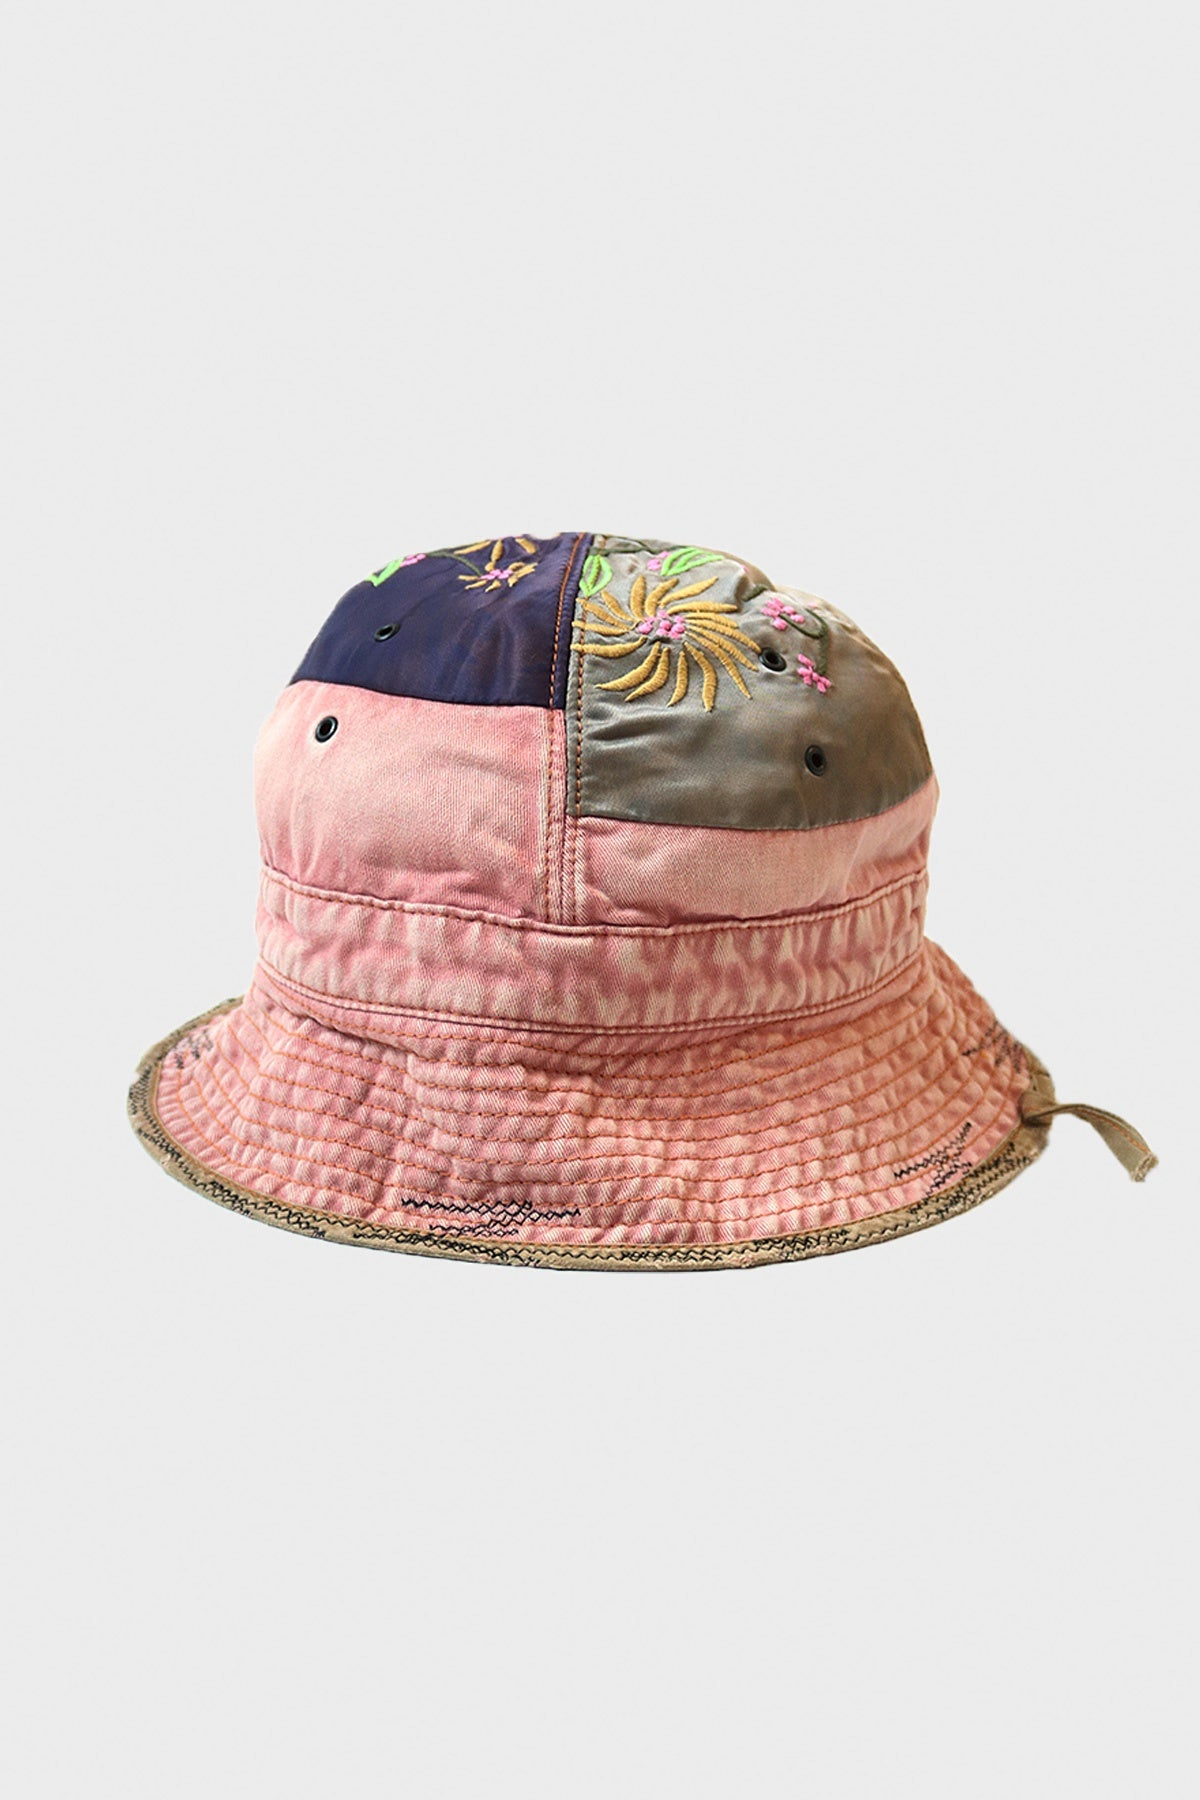 Kapital - Chino Bucket Hat (GYPSY Patch Remake) - Pink - Canoe Club